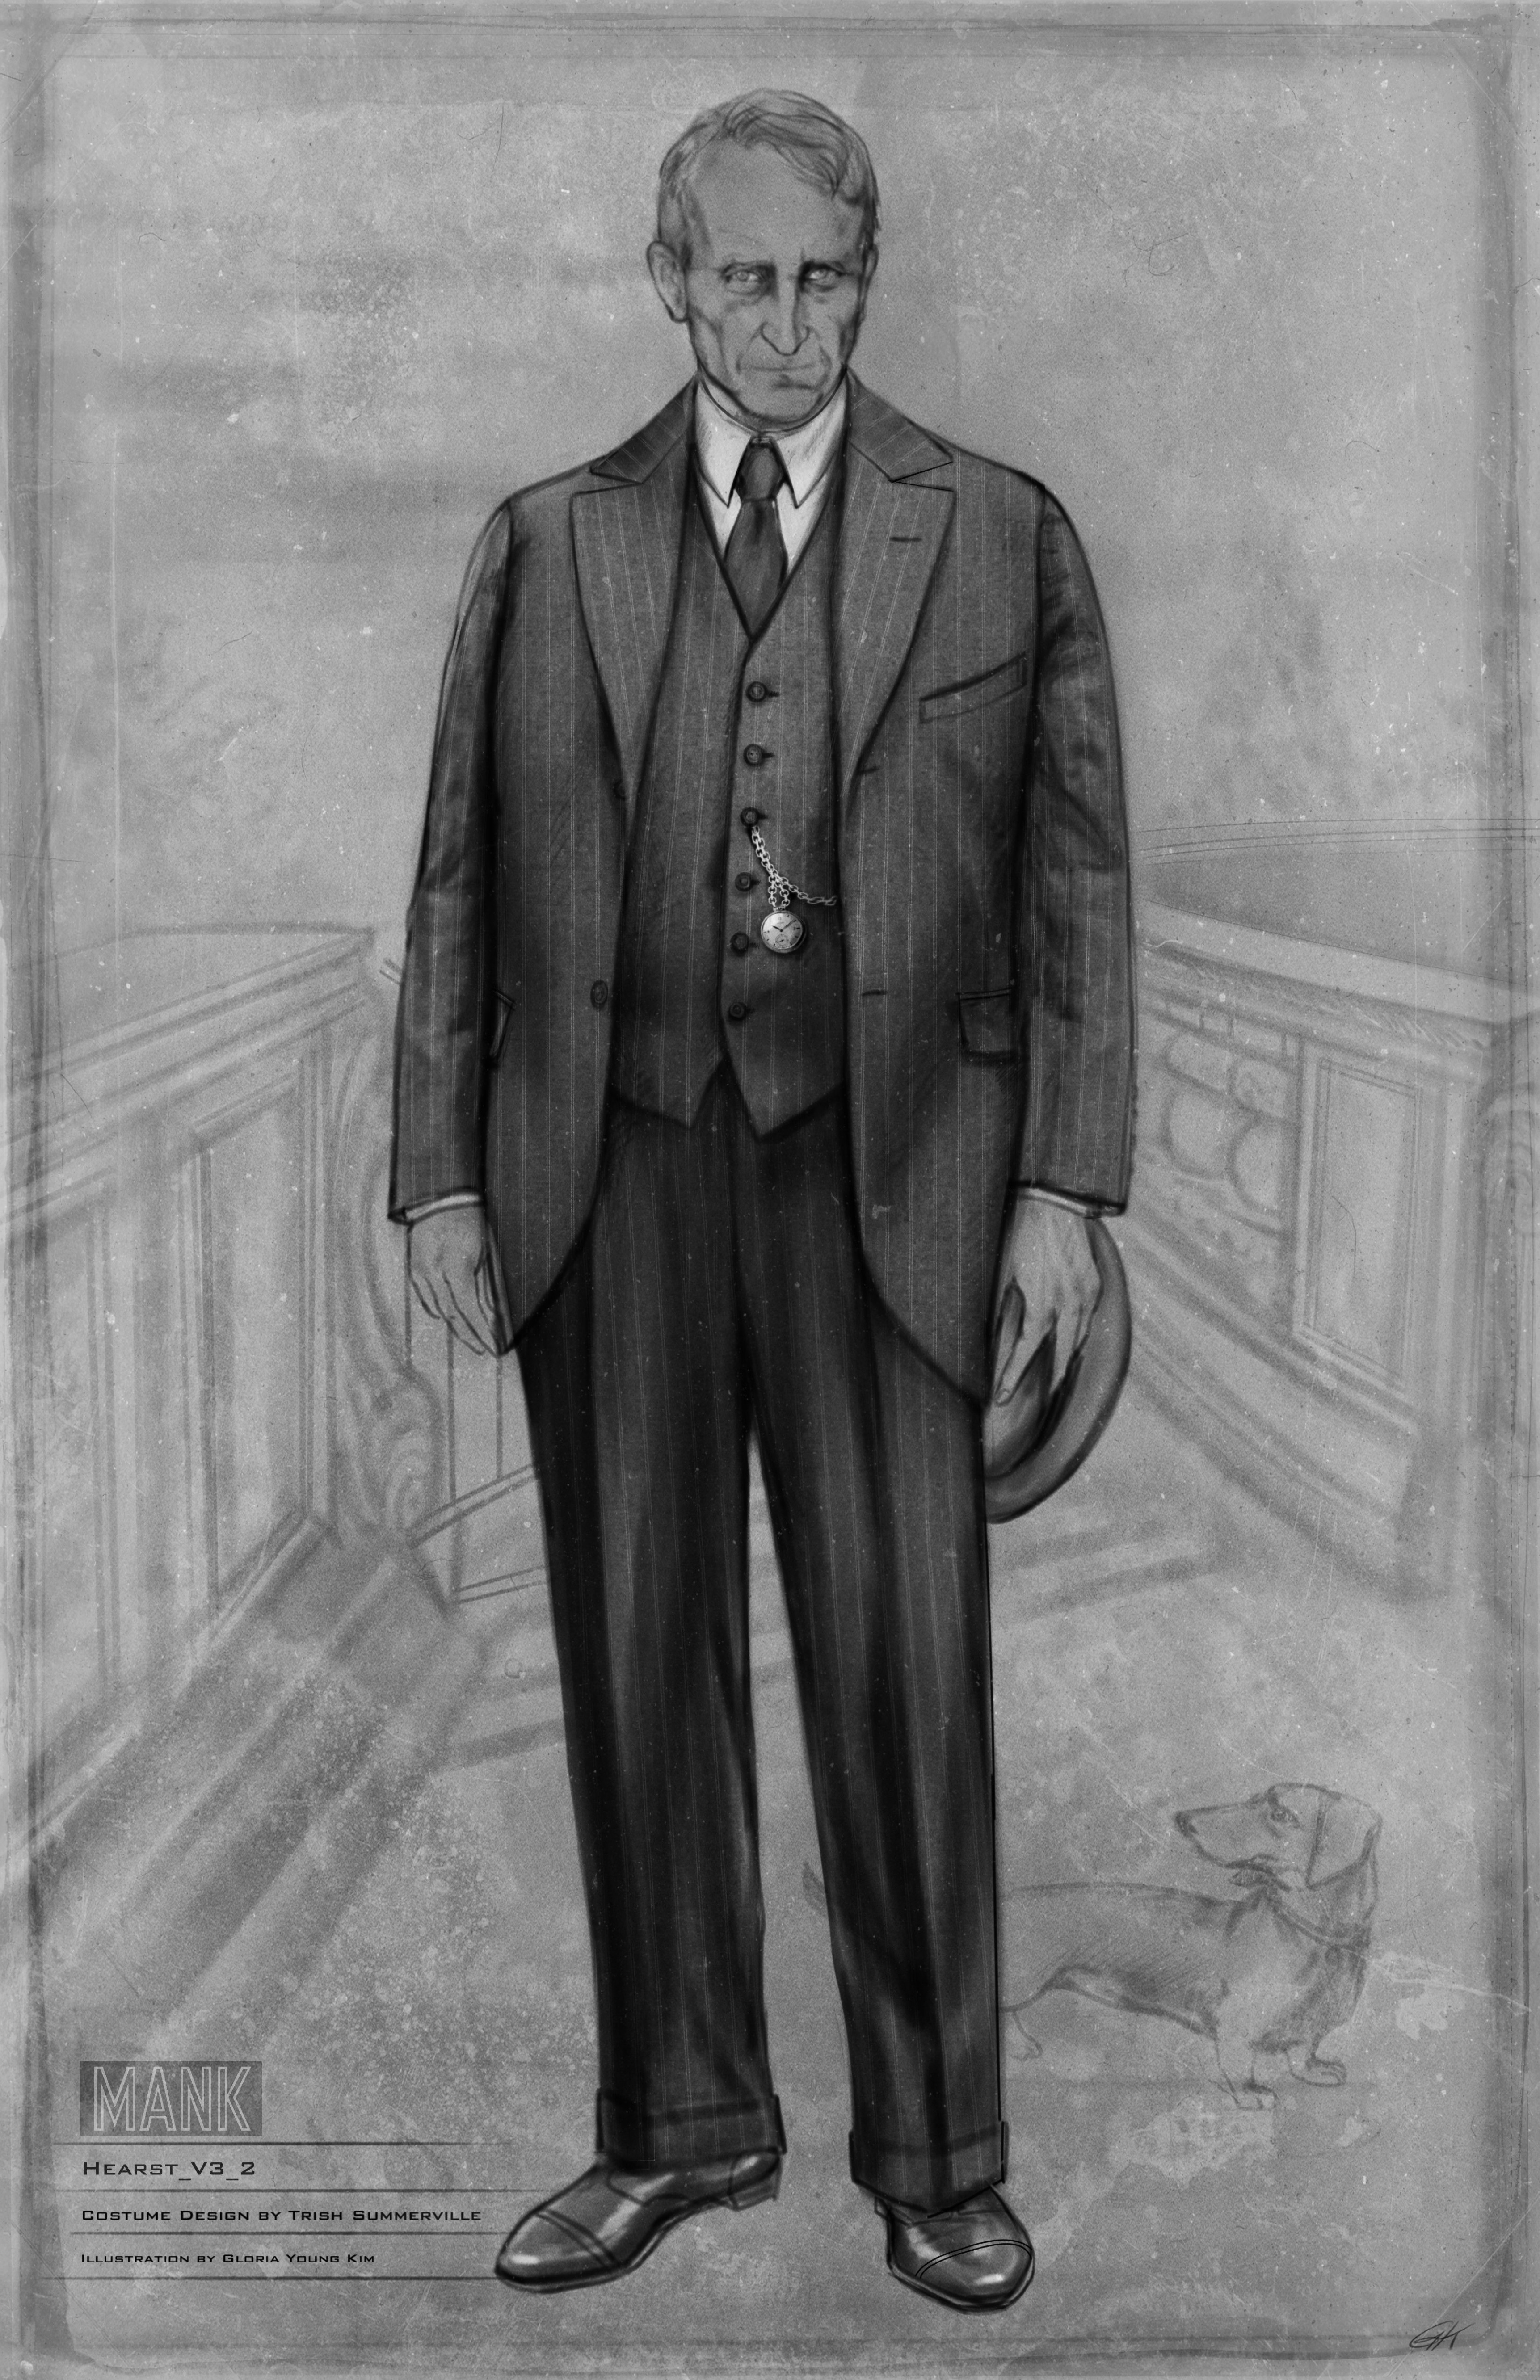 Black-and-white costume sketch for William Randolph Hearst. He looks stern in a pinstripe suit, holding his hat, with a pocket watch peeking through his open jacket.